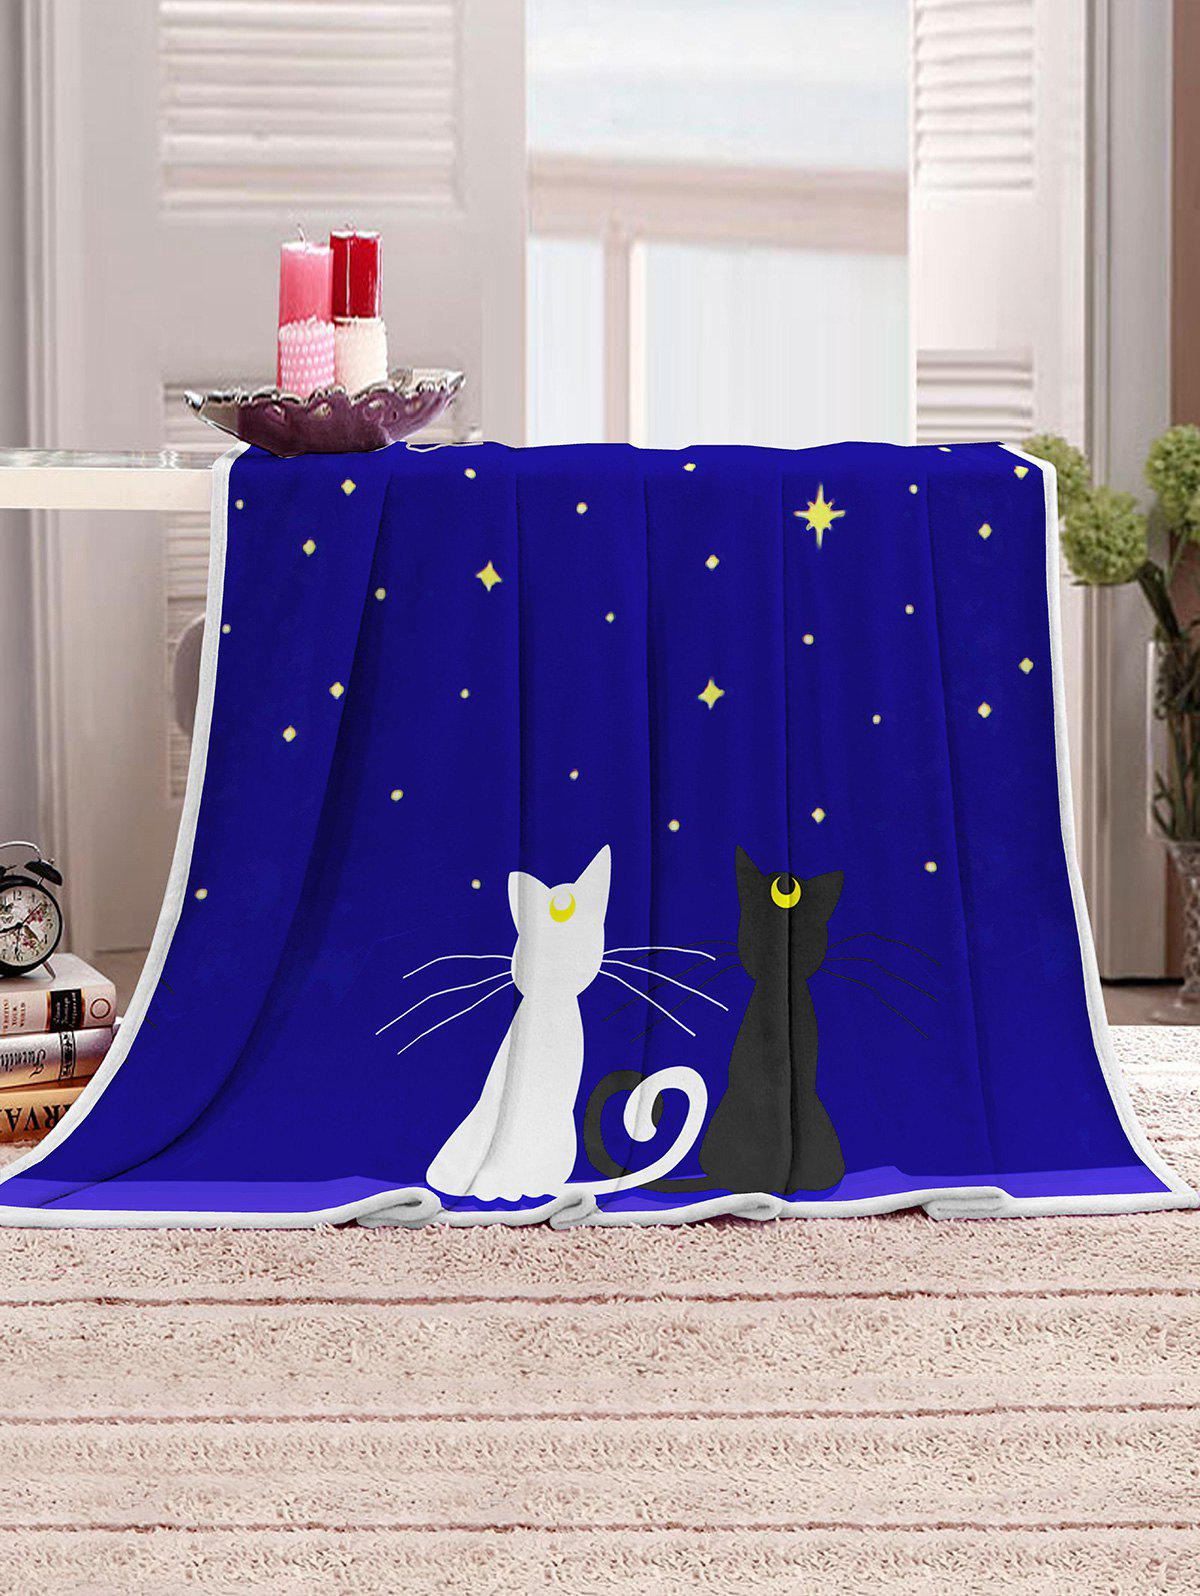 Hot Starry Night Cats Pattern Soft Flannel Throw Blanket